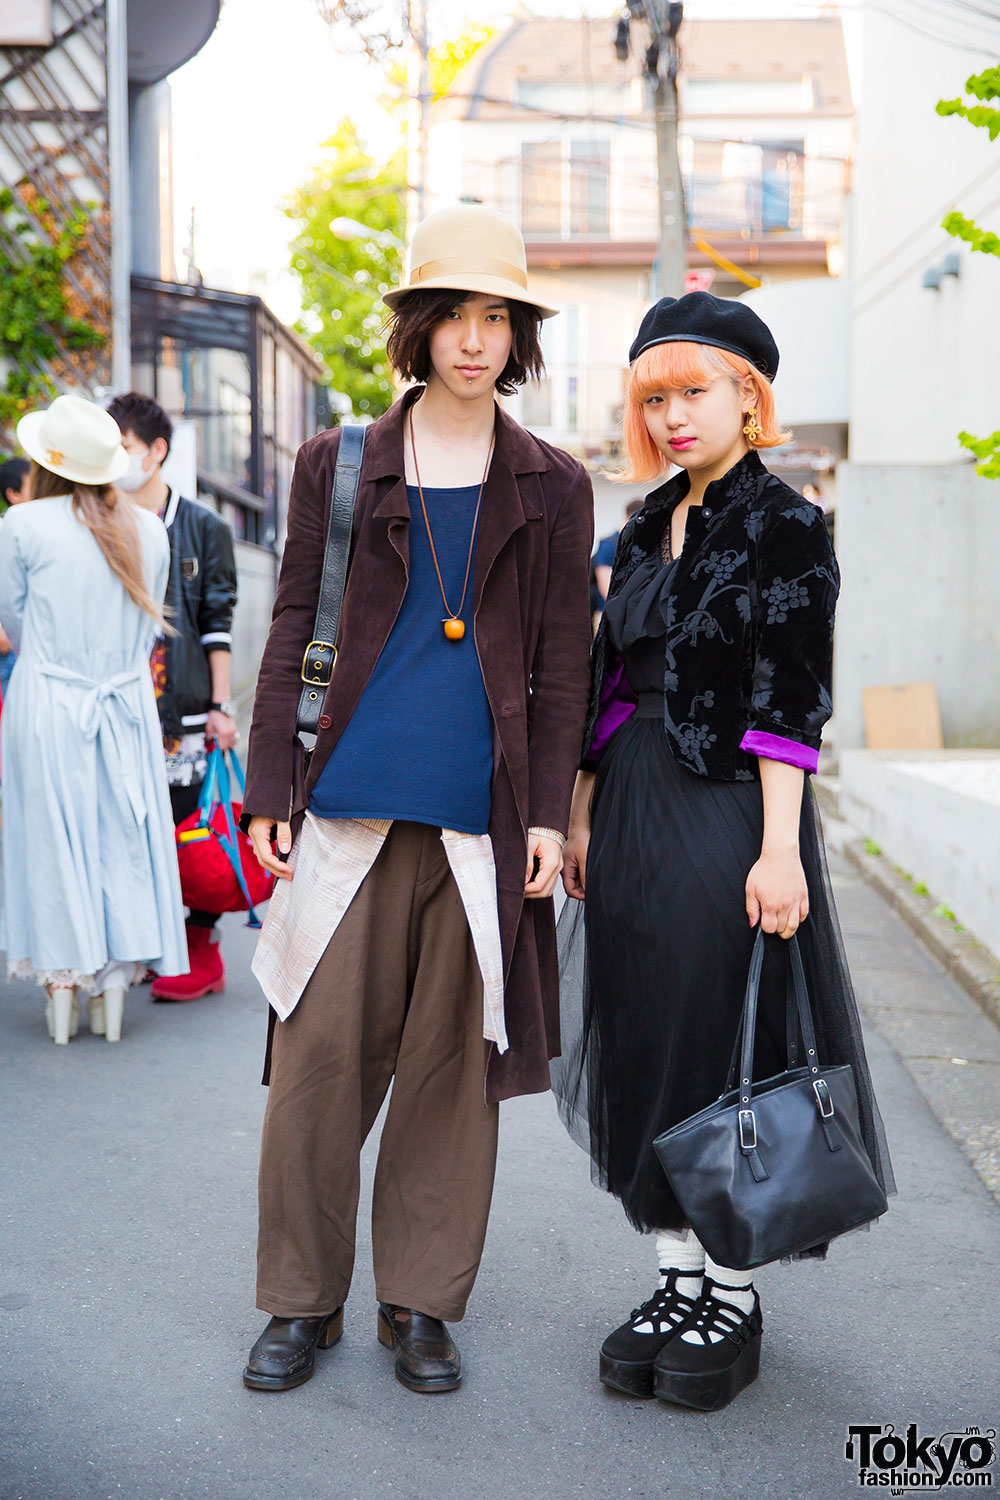 Bunka fashion college students in harajuku wearing vintage for College fashion